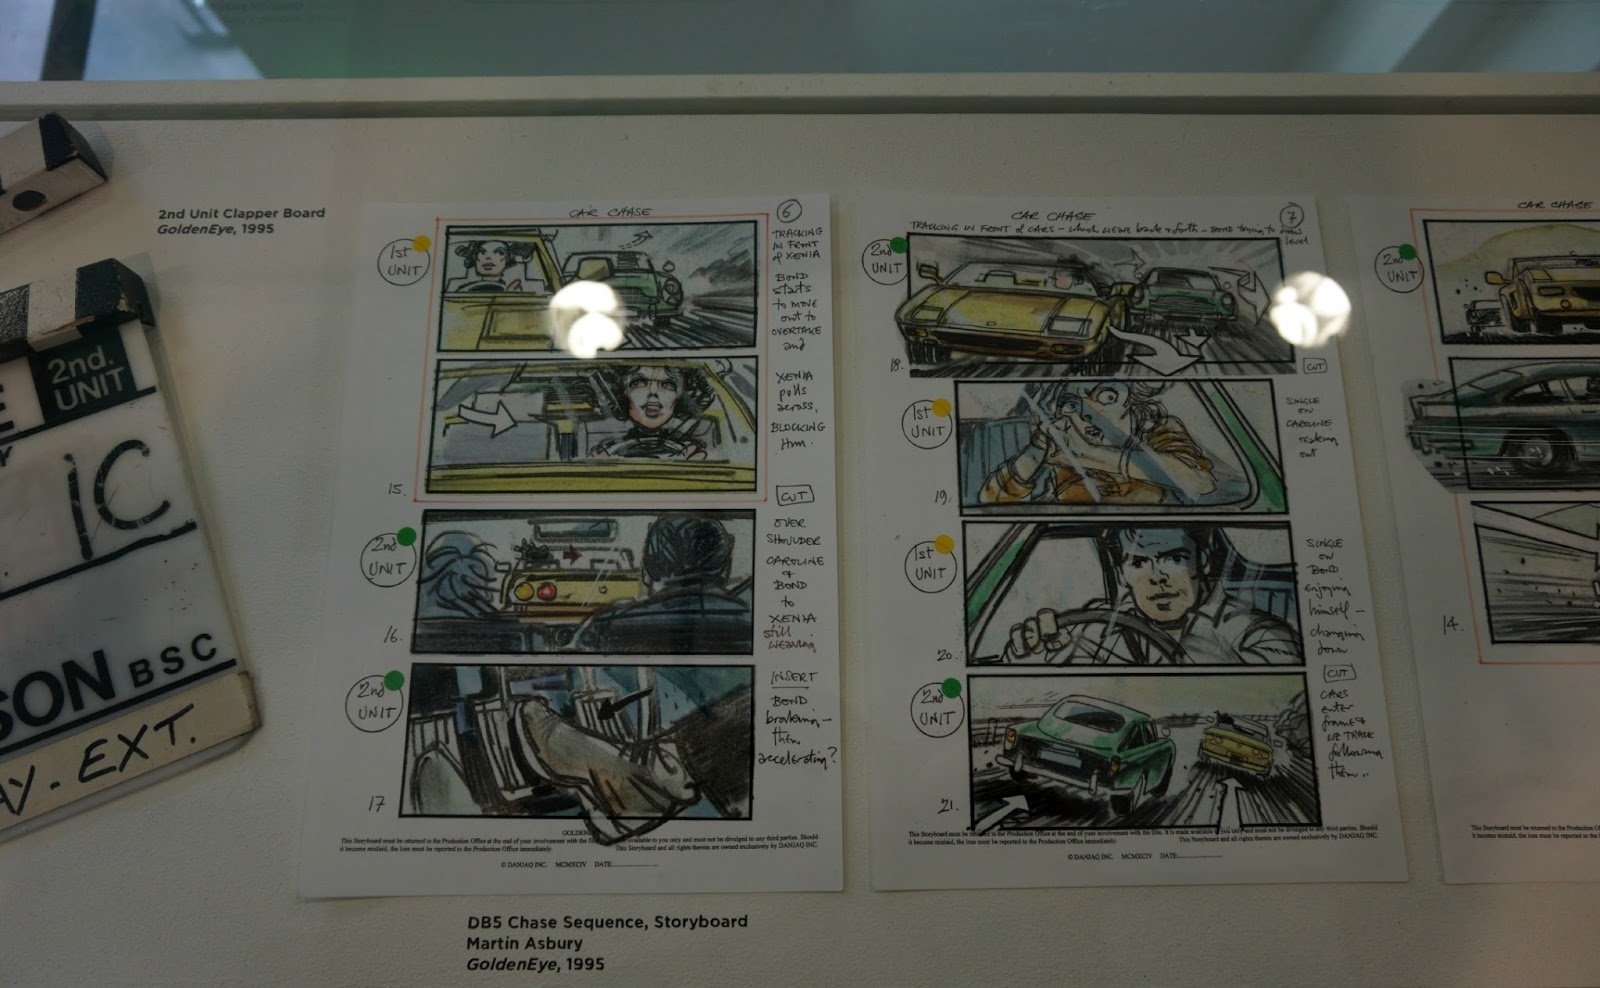 Storyboard at James Bond Car Exhibition